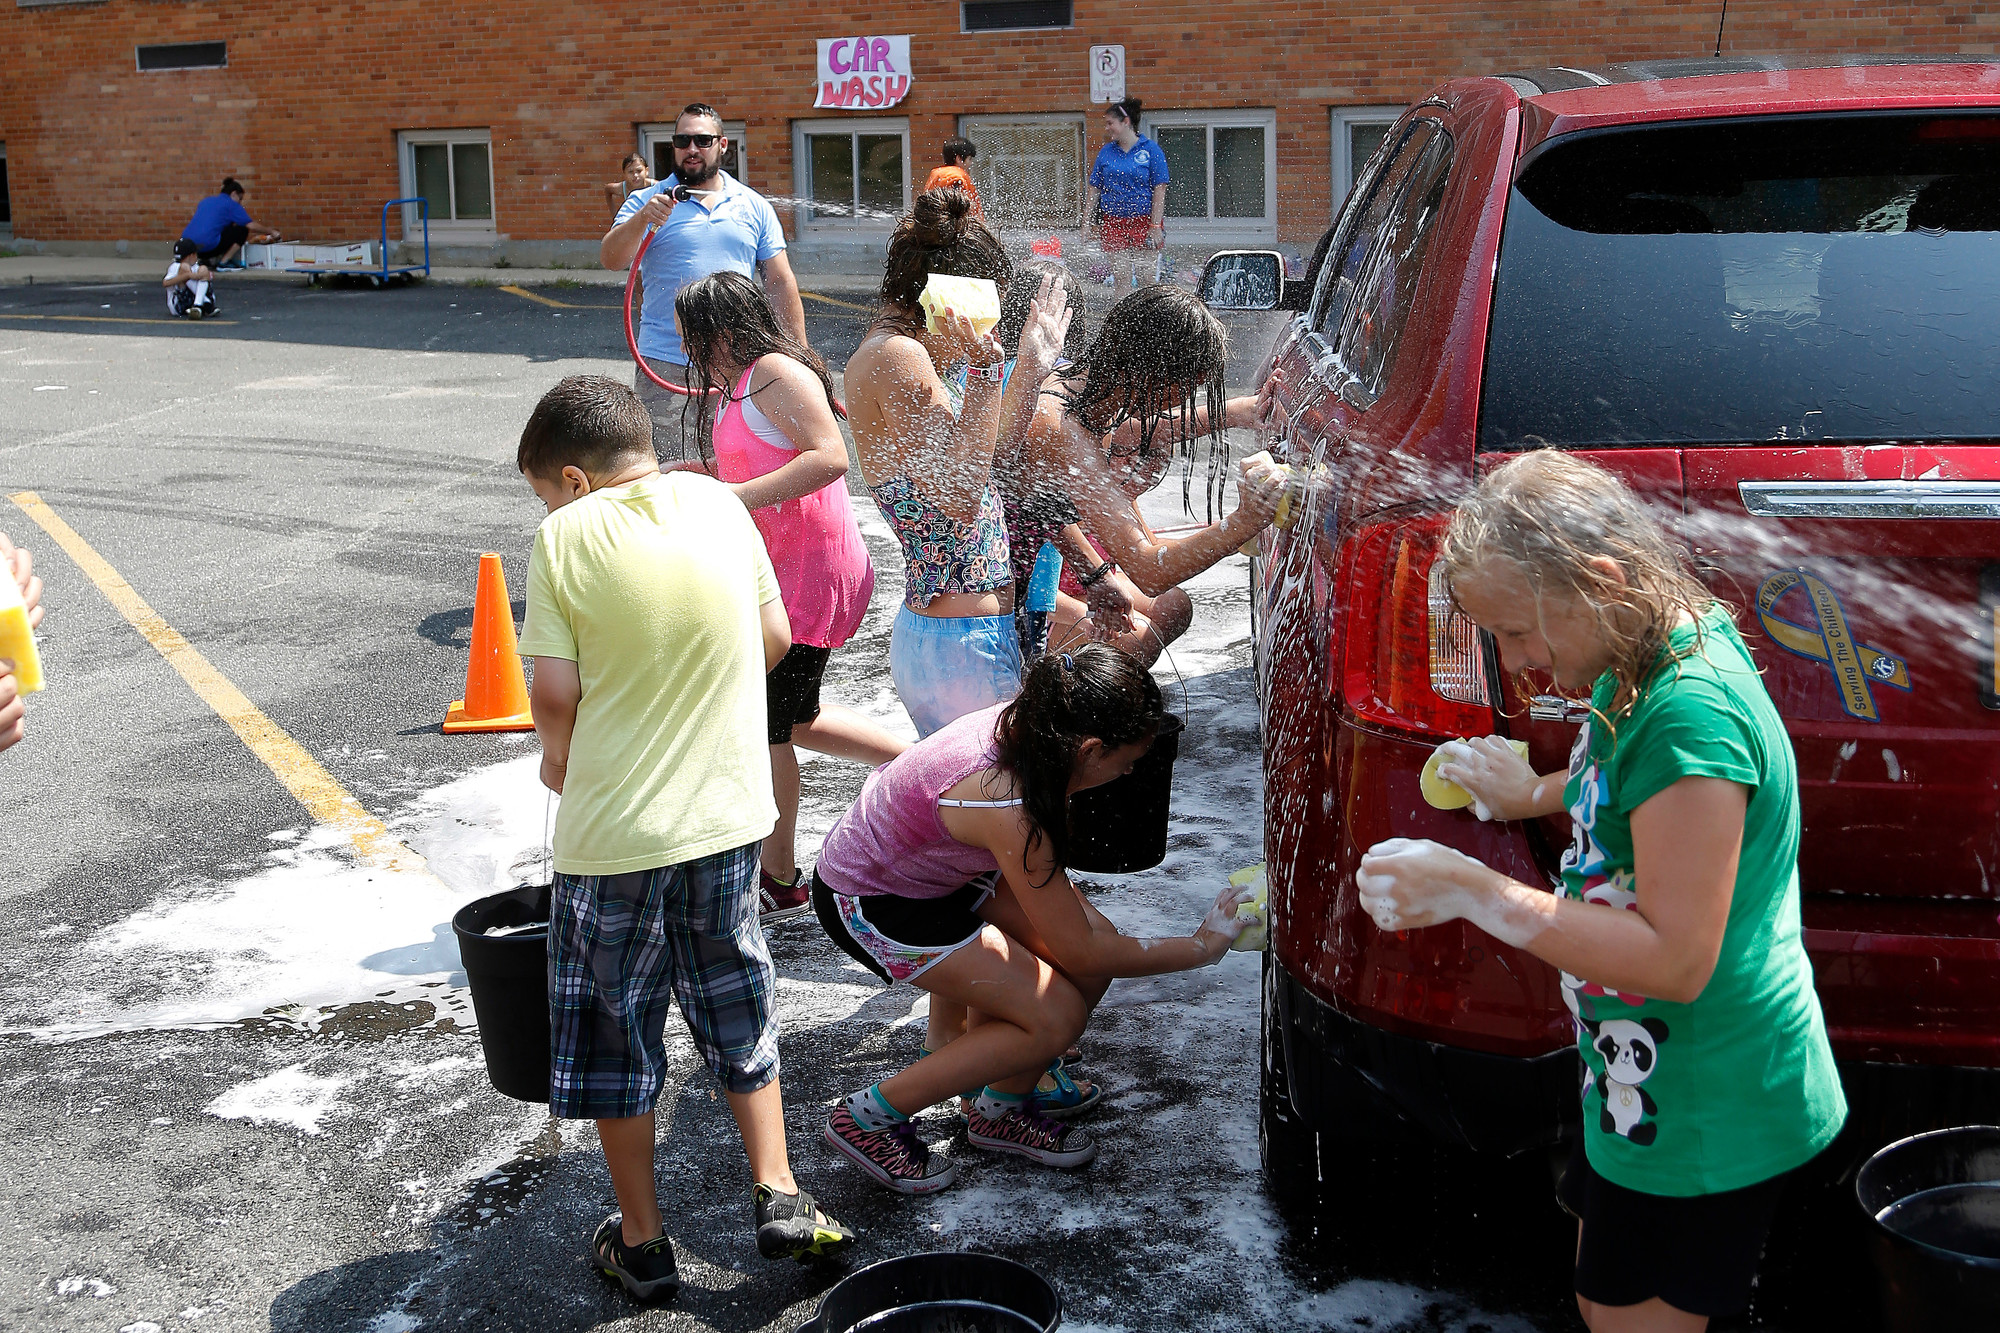 Volunteers from the Extended Playground Camp, along with the car they are washing, entered the rinse cycle.